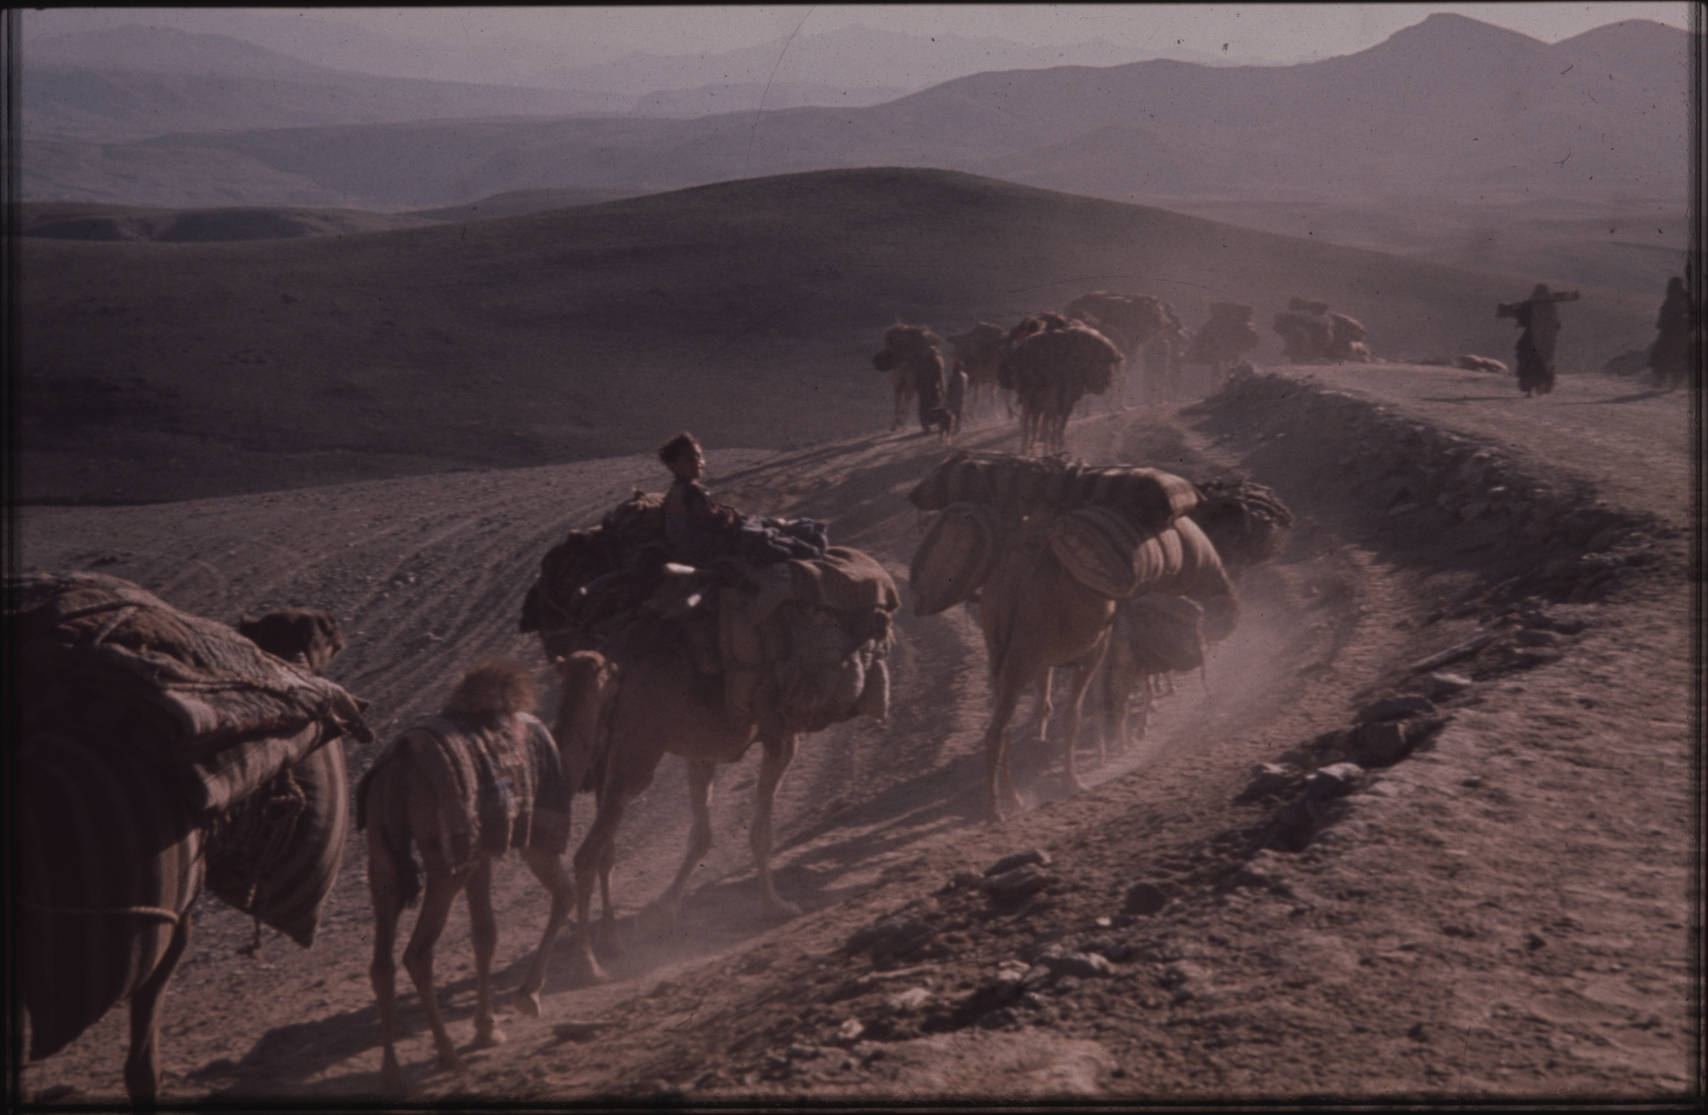 Nomads use camels to transport their belongings. An adult camel can carry approximately 300 kilos. The nomads respect their animals very much and never overburden them. The animals are their basis of life. Photo: Jean Bourgeois, 1968